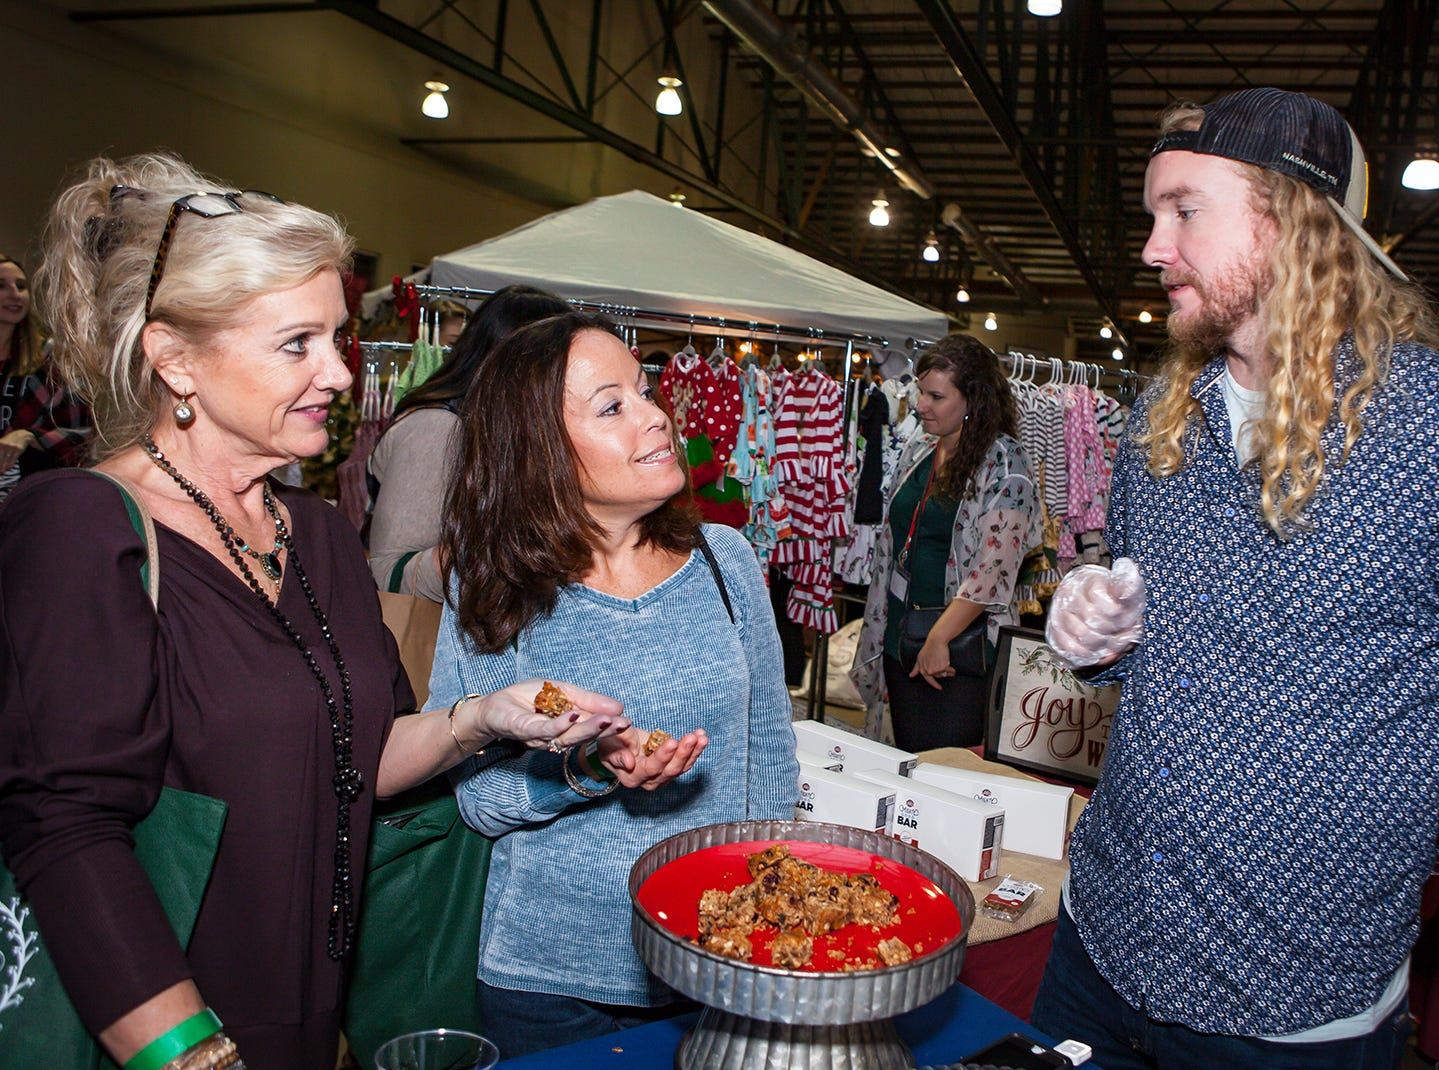 Alesia Normand and Ronya Cervantez sample a treat from Jake Burman at MIstletoe & Martinis on Friday, Nov. 30, the preview party for the 2018 Hollyday Marketplace hosted by the Junior League of Murfreesboro.